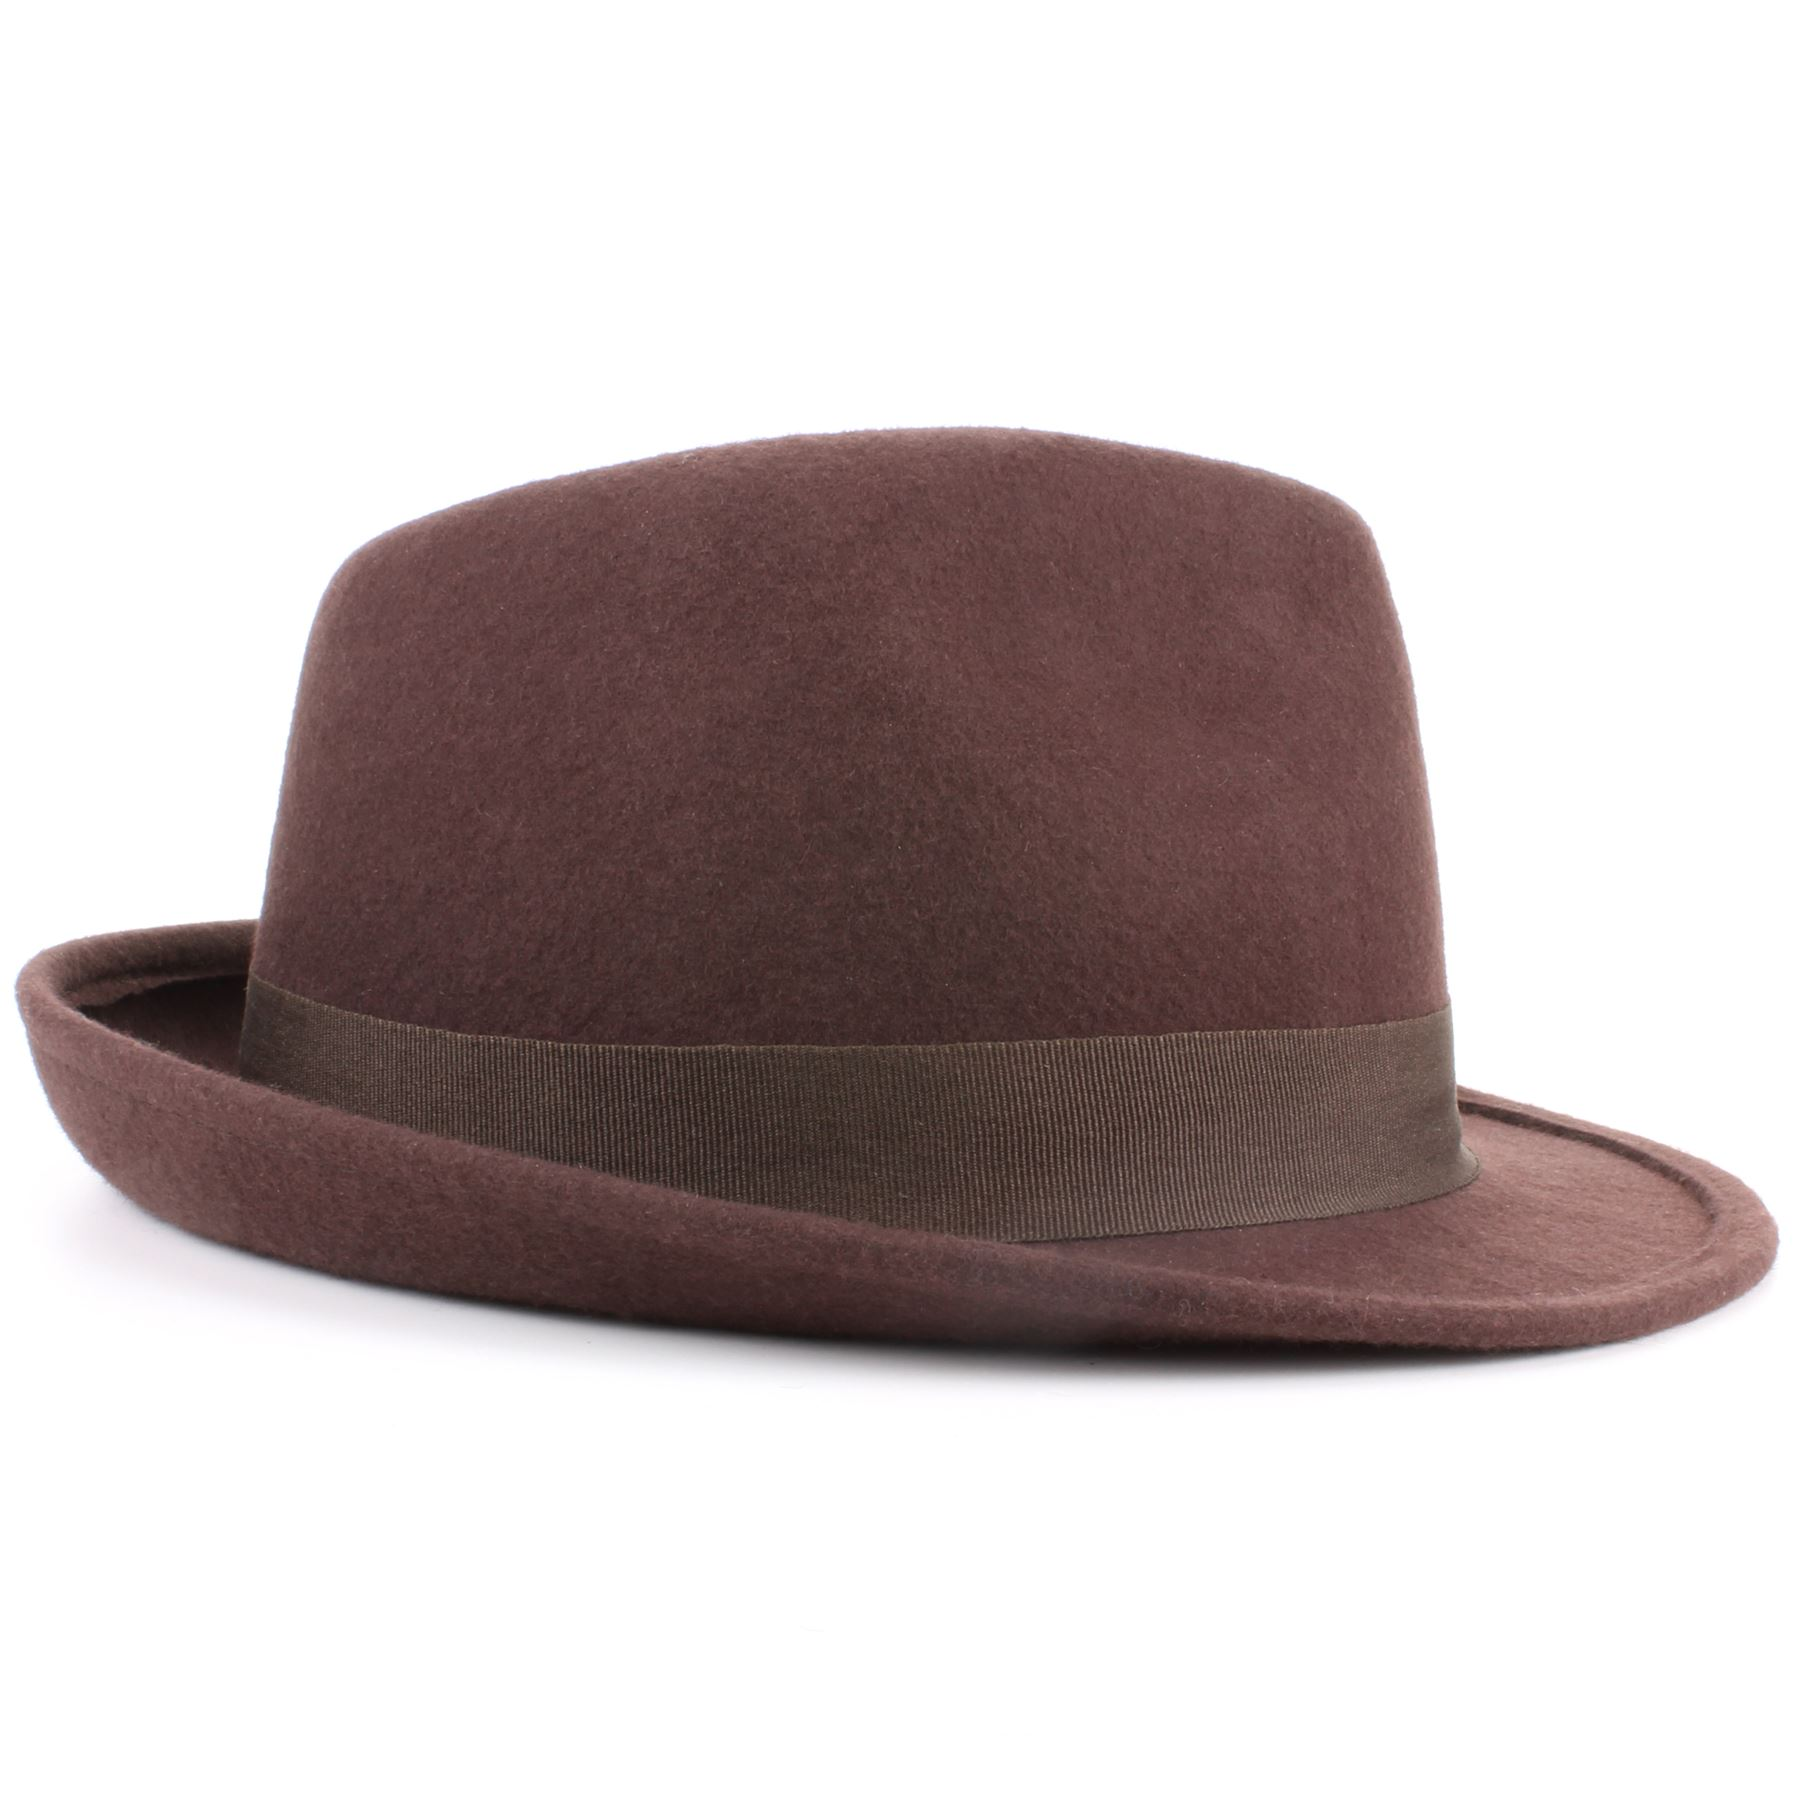 Hat with a fresh sewn textured finish. The Castor Sewn Trilby features the classic Castor shape and trimmings including a stingy curled brim, grosgrain hat band with side bow and Brixton shield logo side pin. Freshen up your look this spring and summer with the Castor Sewn Trilby, great for both men.